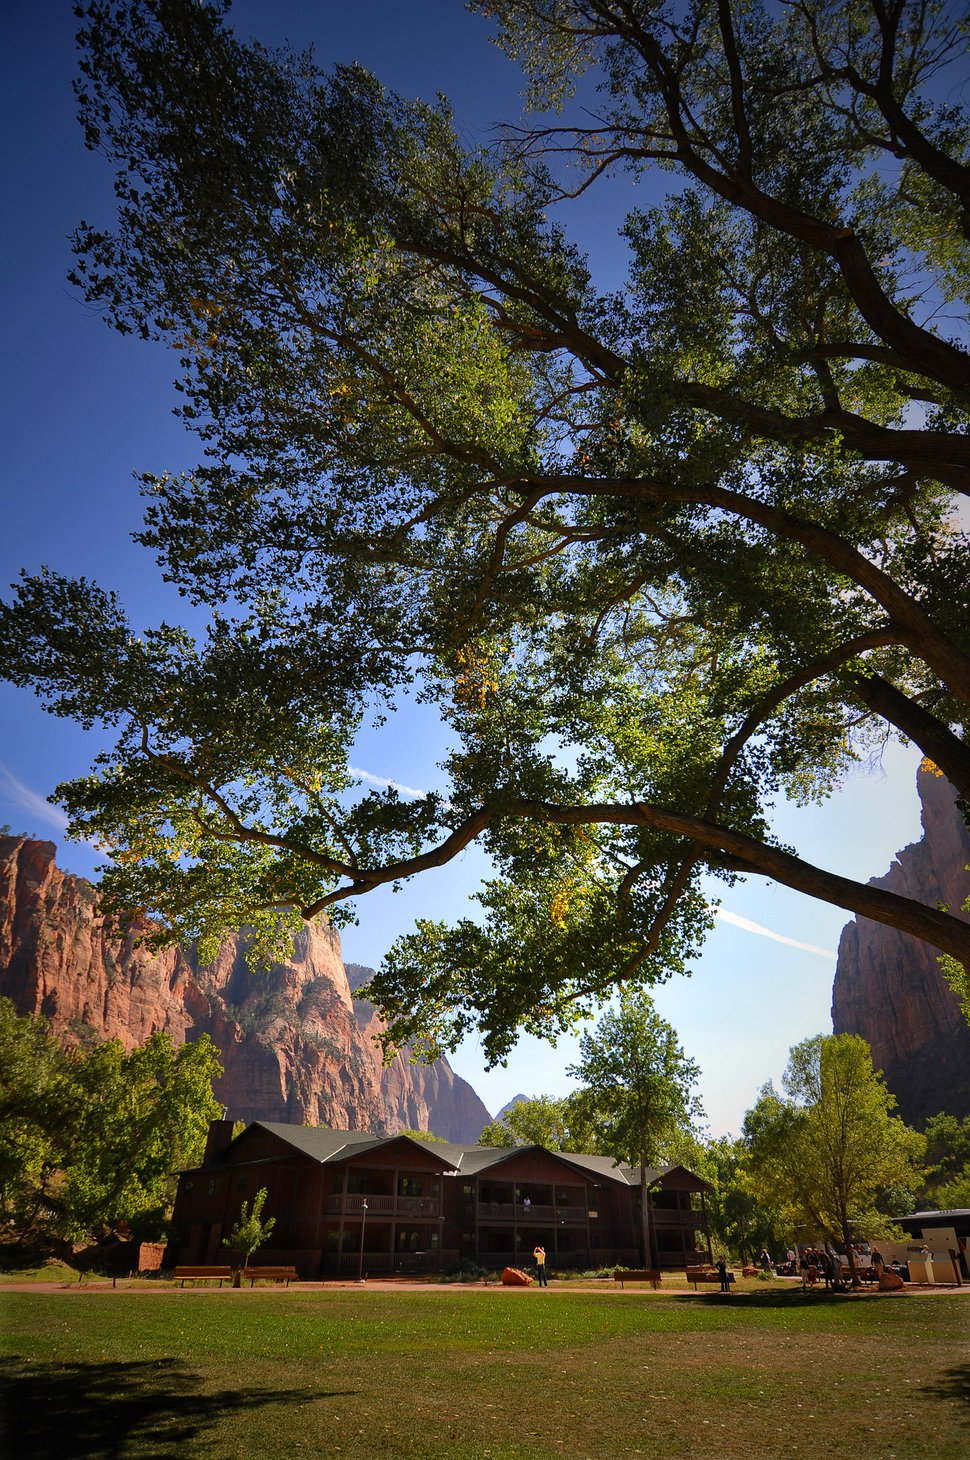 (Courtesy photo) The Sentinel and The Watchman hotel buildings at Zion National Park Lodge recently earned LEED Silver certification for adopting measures to create healthy, highly efficient and cost-saving buildings.